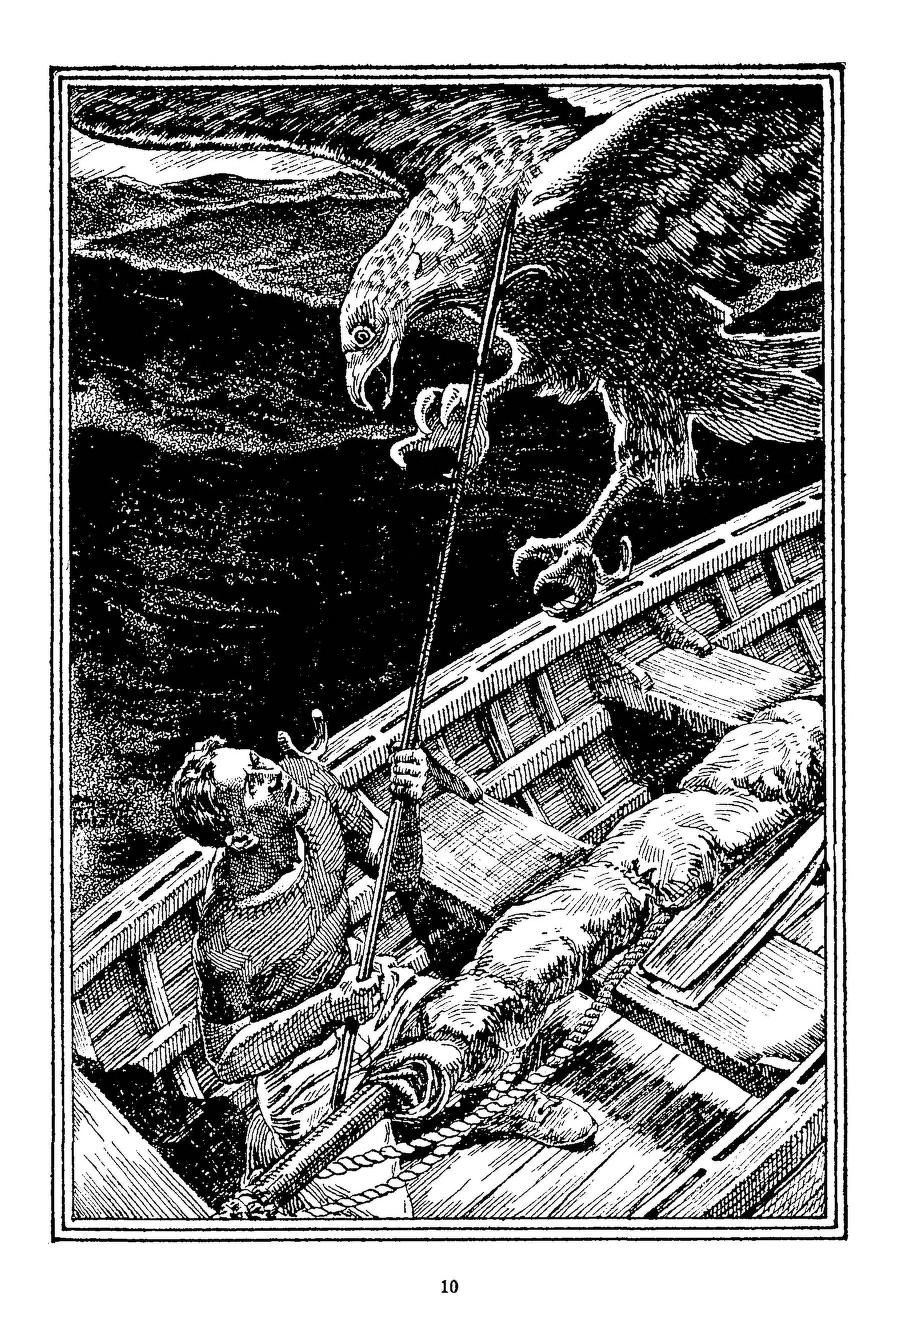 Lawrence Sterne Stevens, The Island of Captain Sparrow by S. Fowler Wright, Famous Fantastic Mysteries 46-04, P.10.